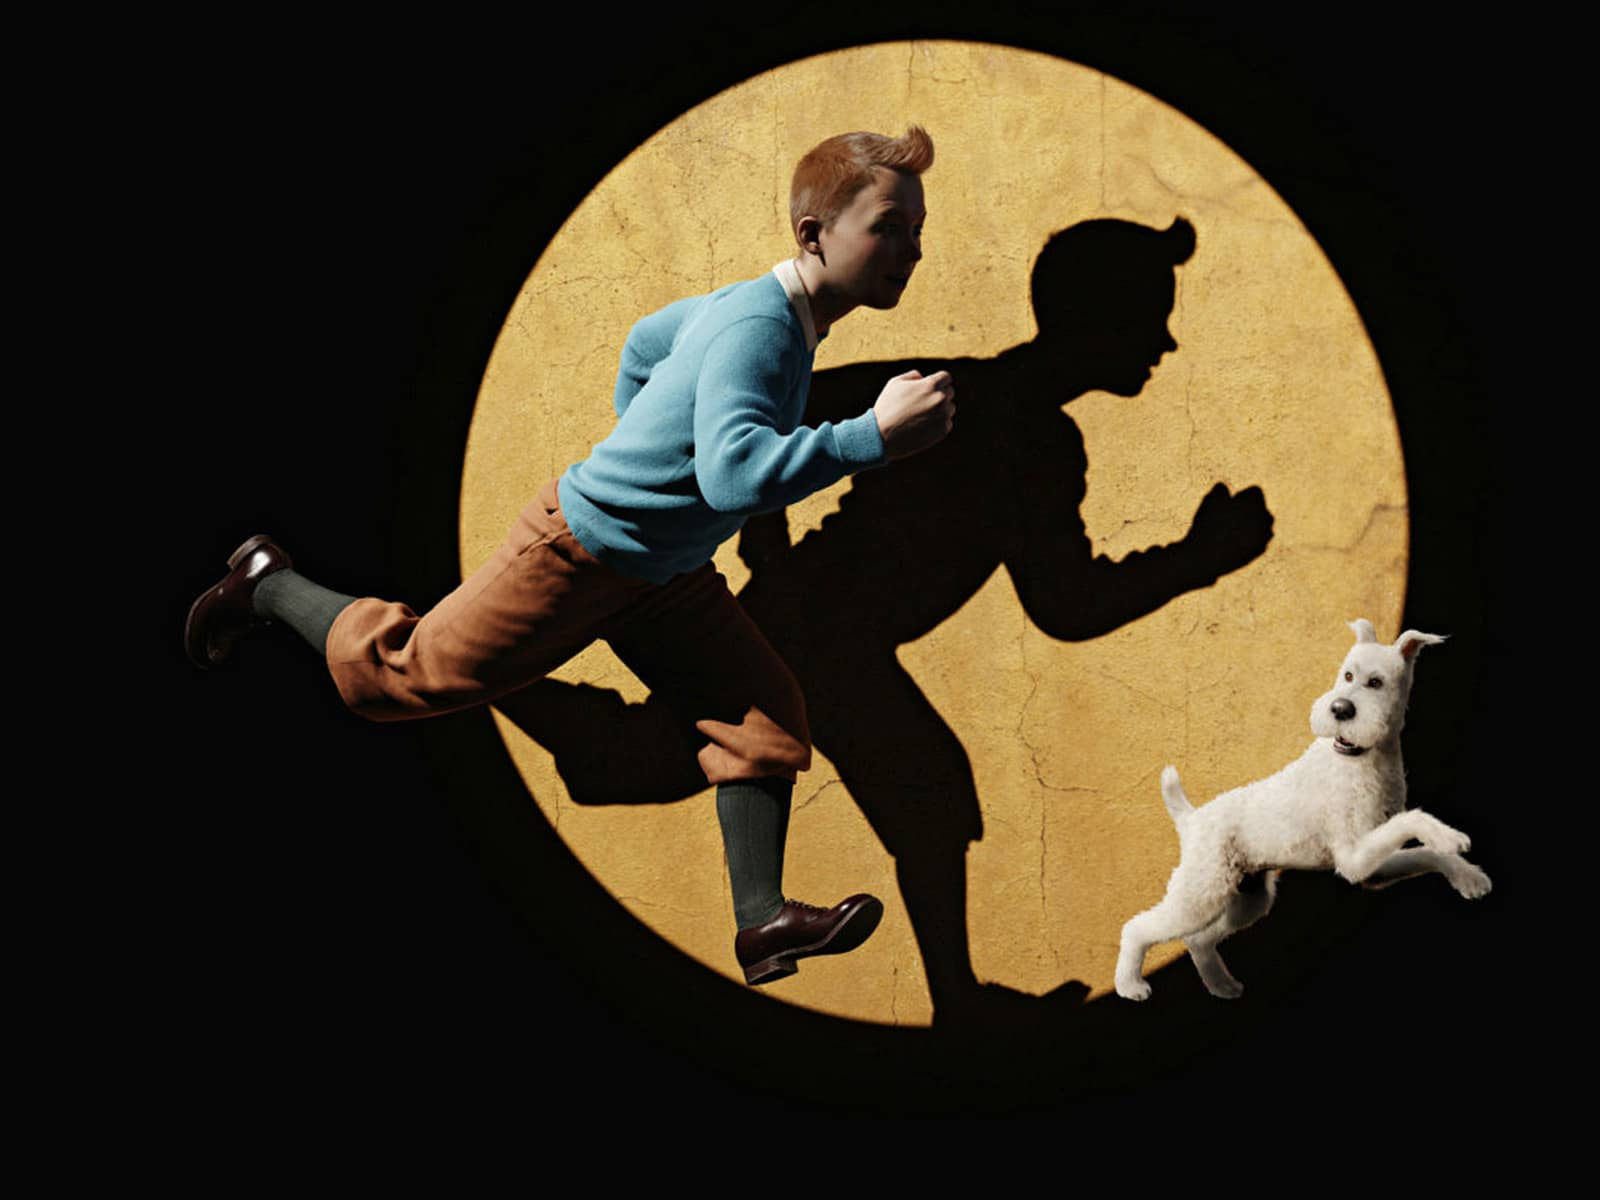 Las Aventuras de Tintin Wallpaper Pack